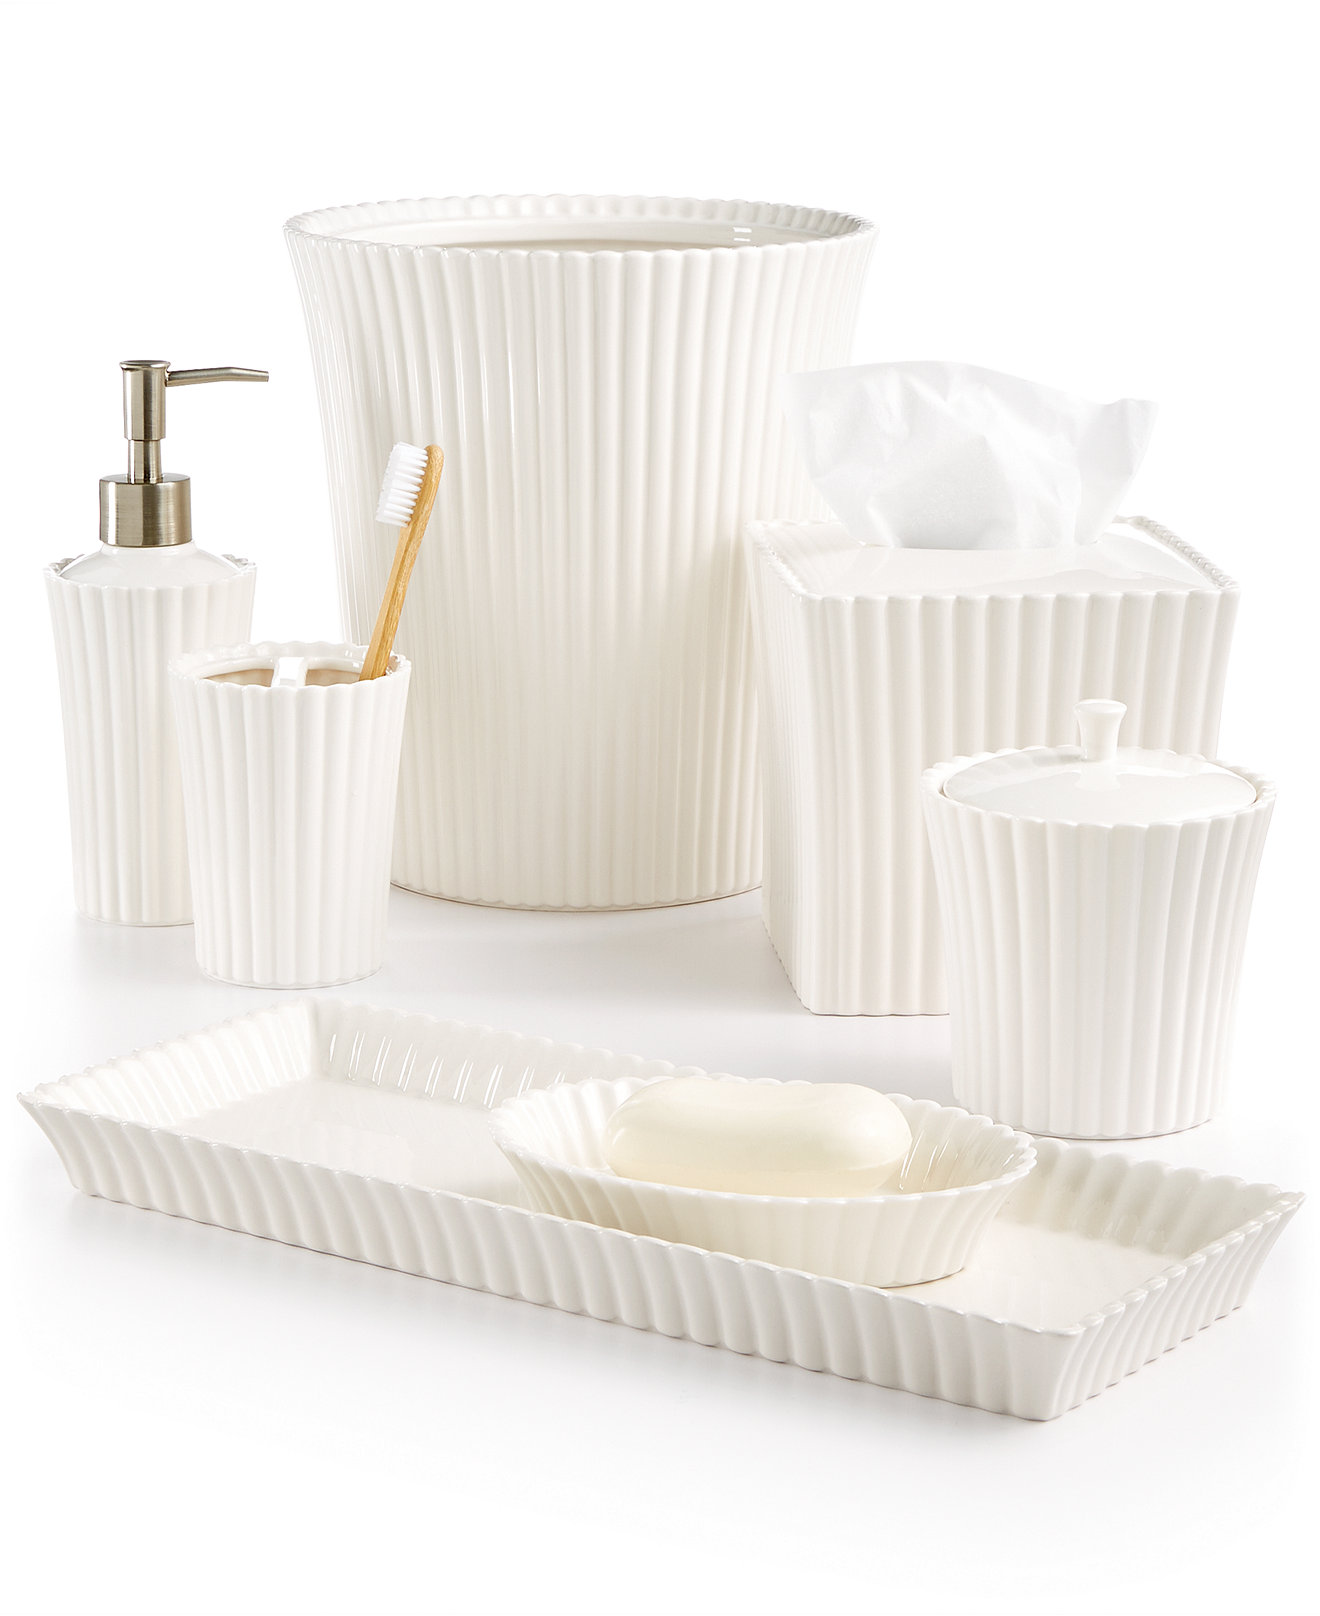 Mercury glass bathroom accessories - Martha Stewart Collection Ceramic Scallop Bath Accessories Created For Macy S